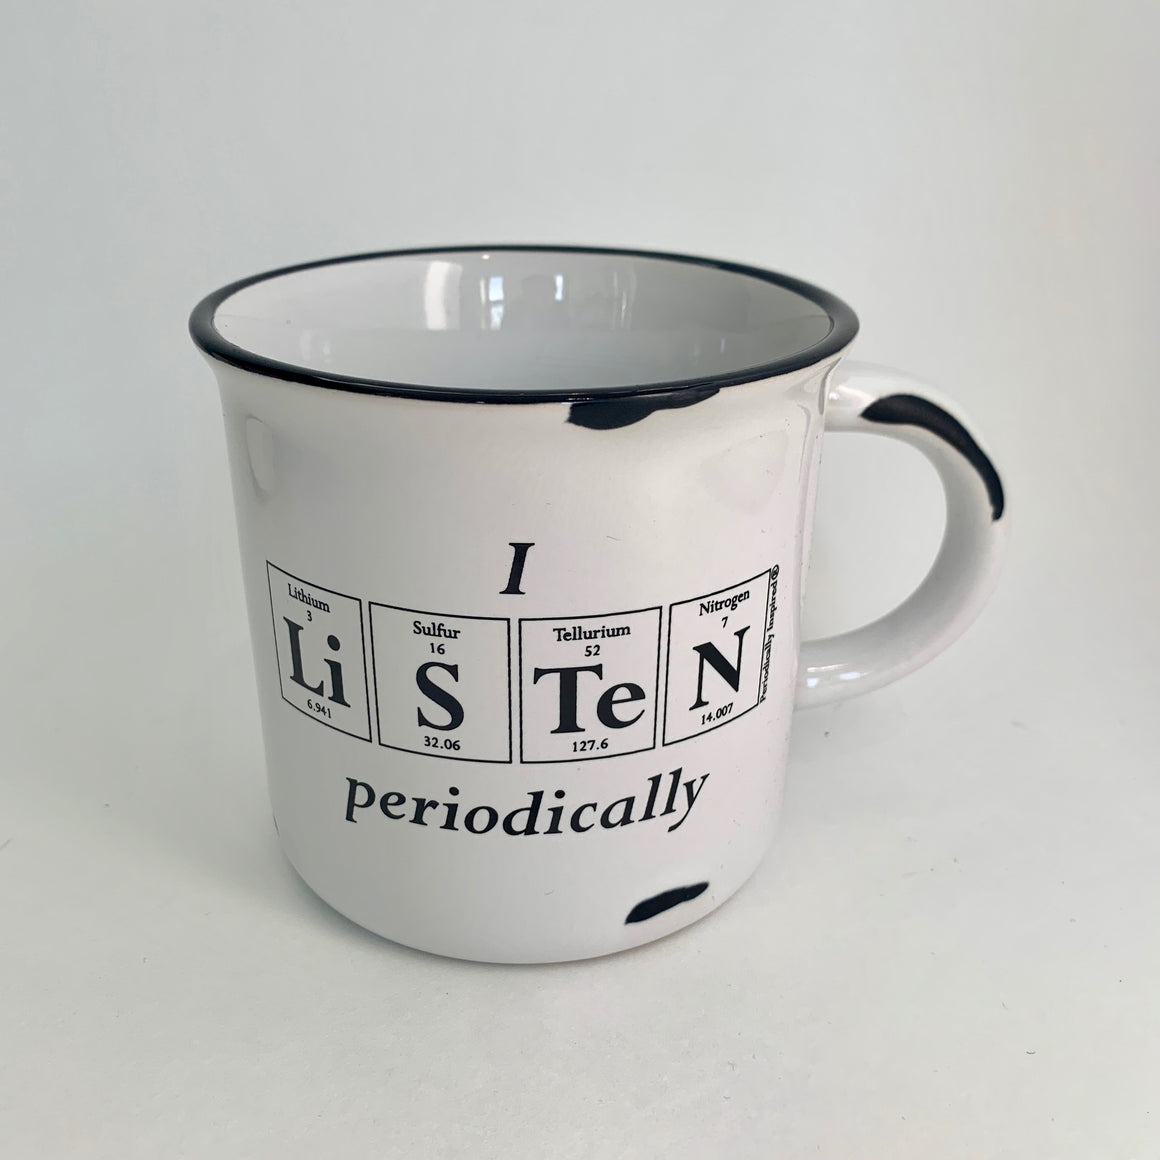 Periodically-Inspired Mug